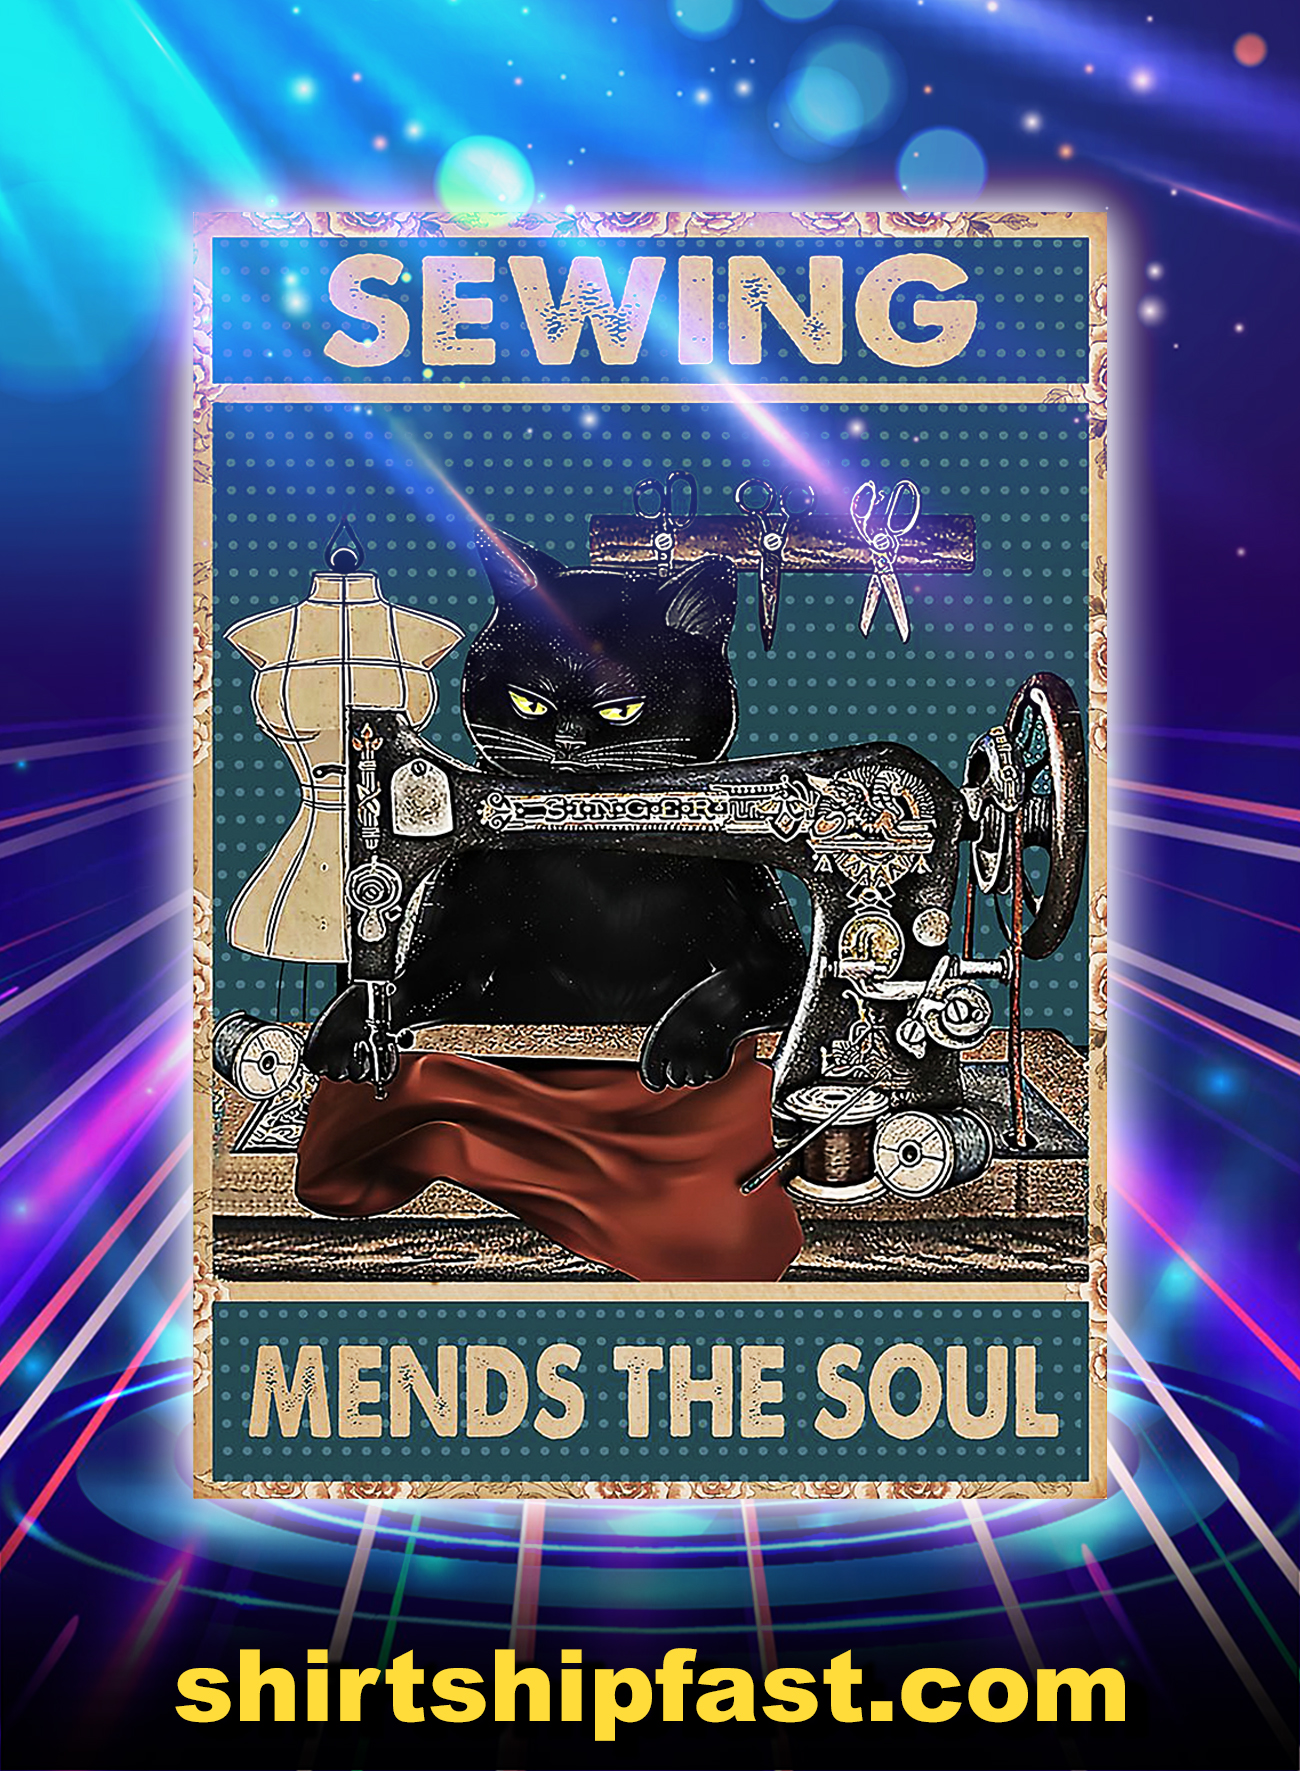 Cat sewing mends the soul poster - A4